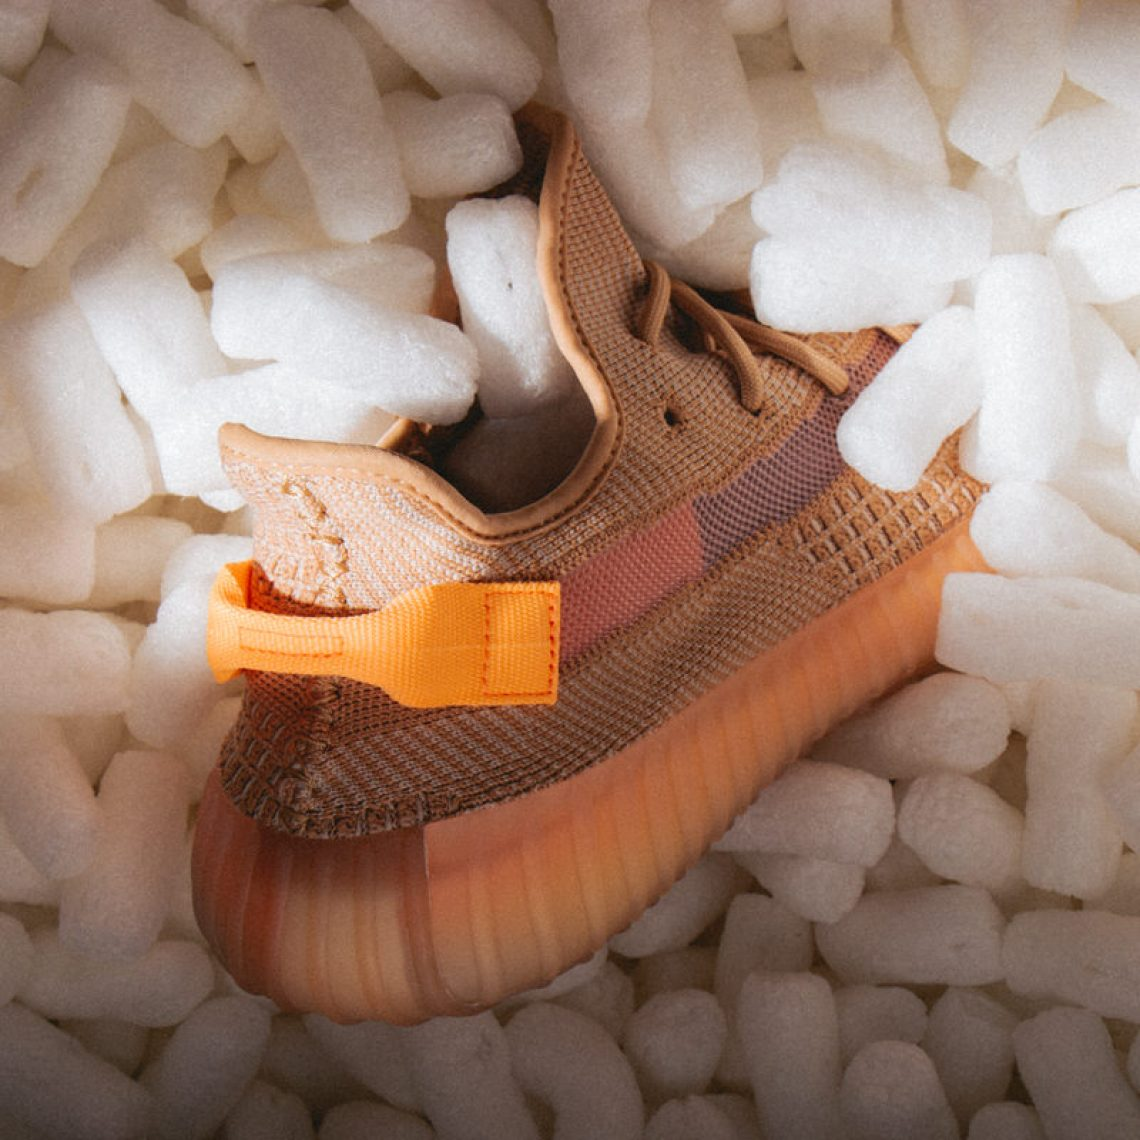 79e816ce7 Where to Cop the Kids-Sized adidas Yeezy Boost 350 V2